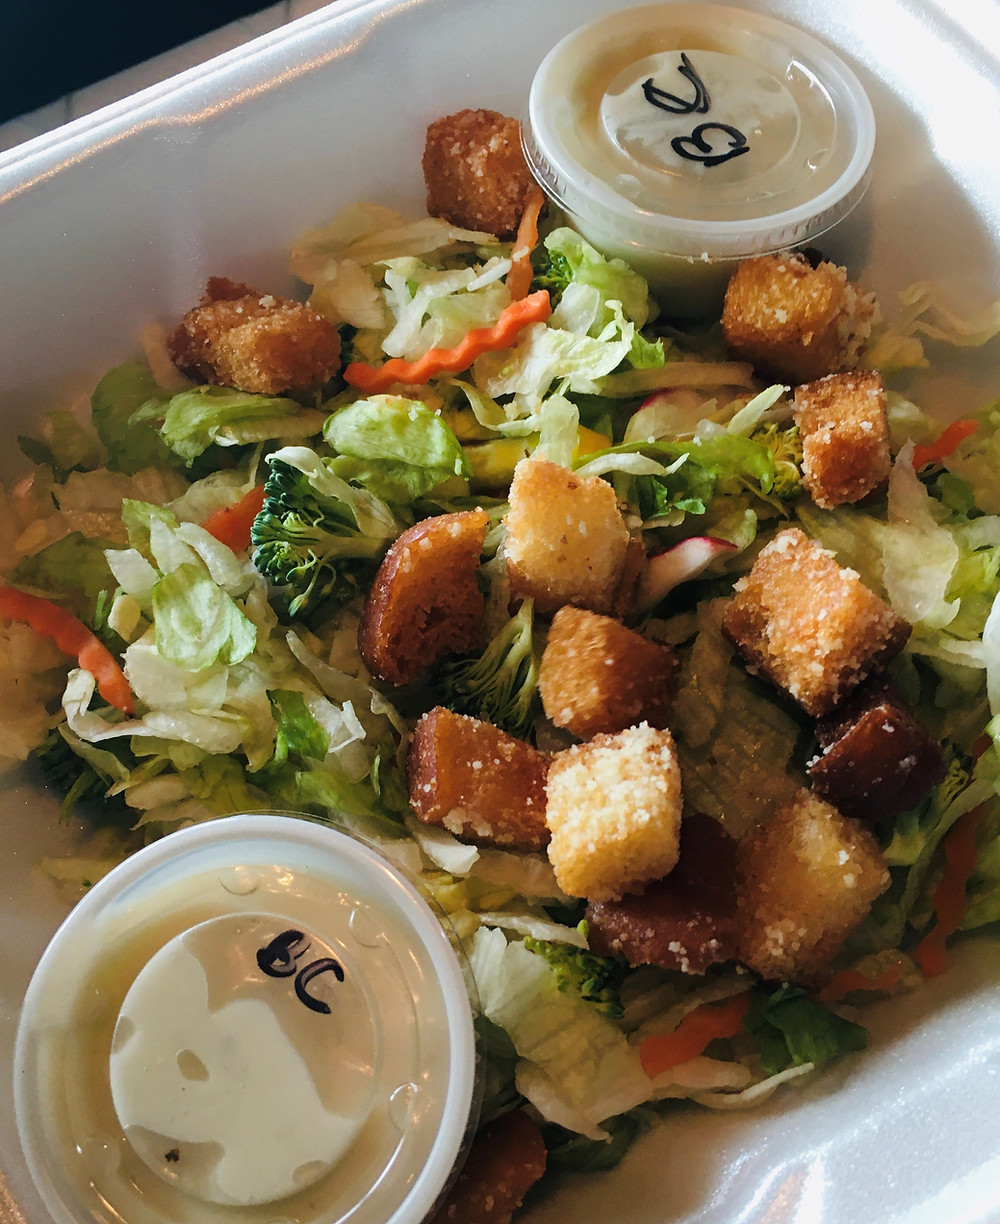 Garden salad with housemade croutons